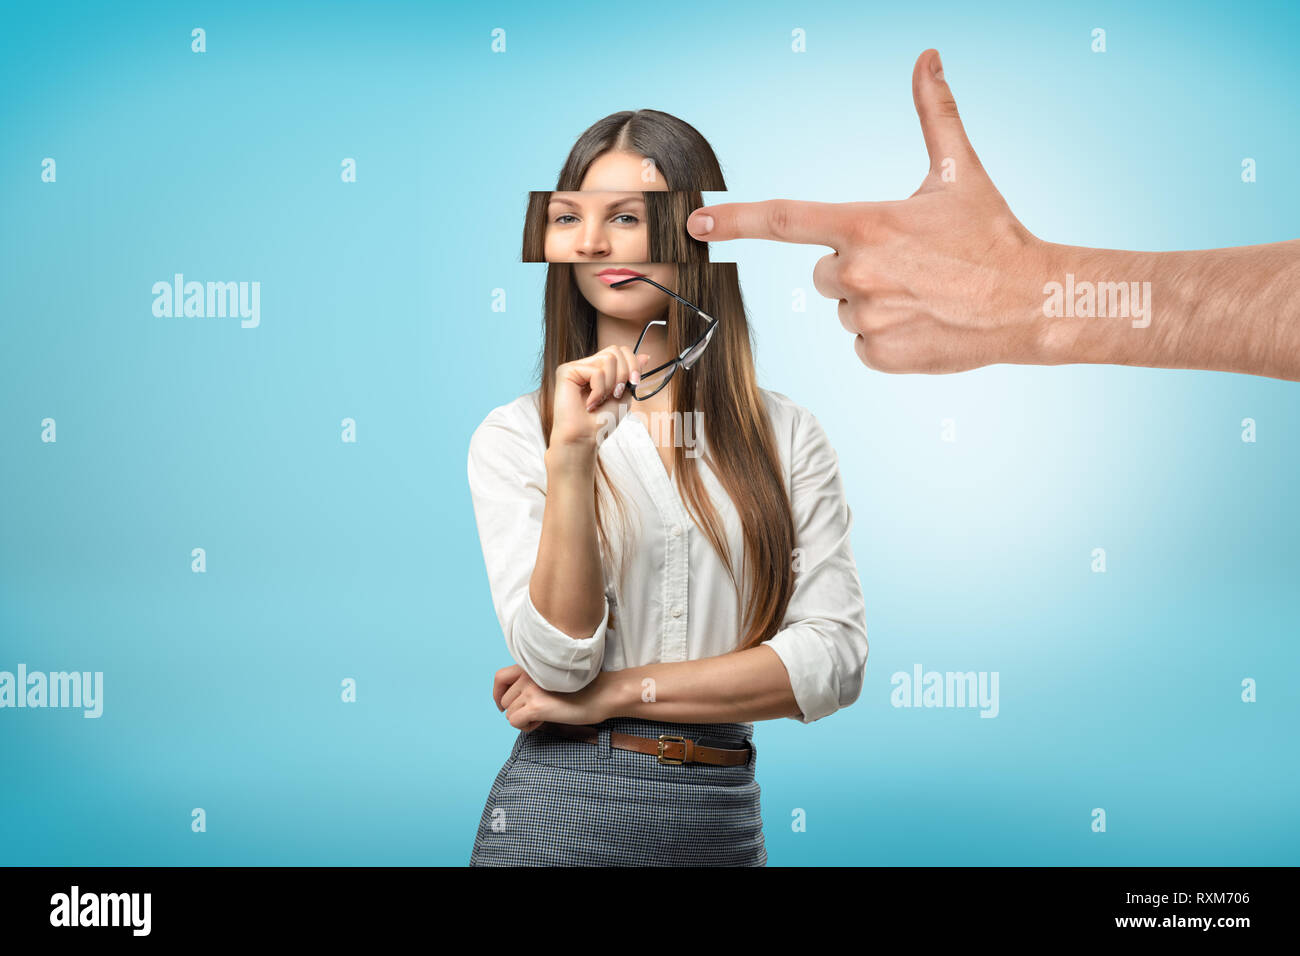 Big male hand with a finger pointing to a young woman with fragmented head on blue background - Stock Image